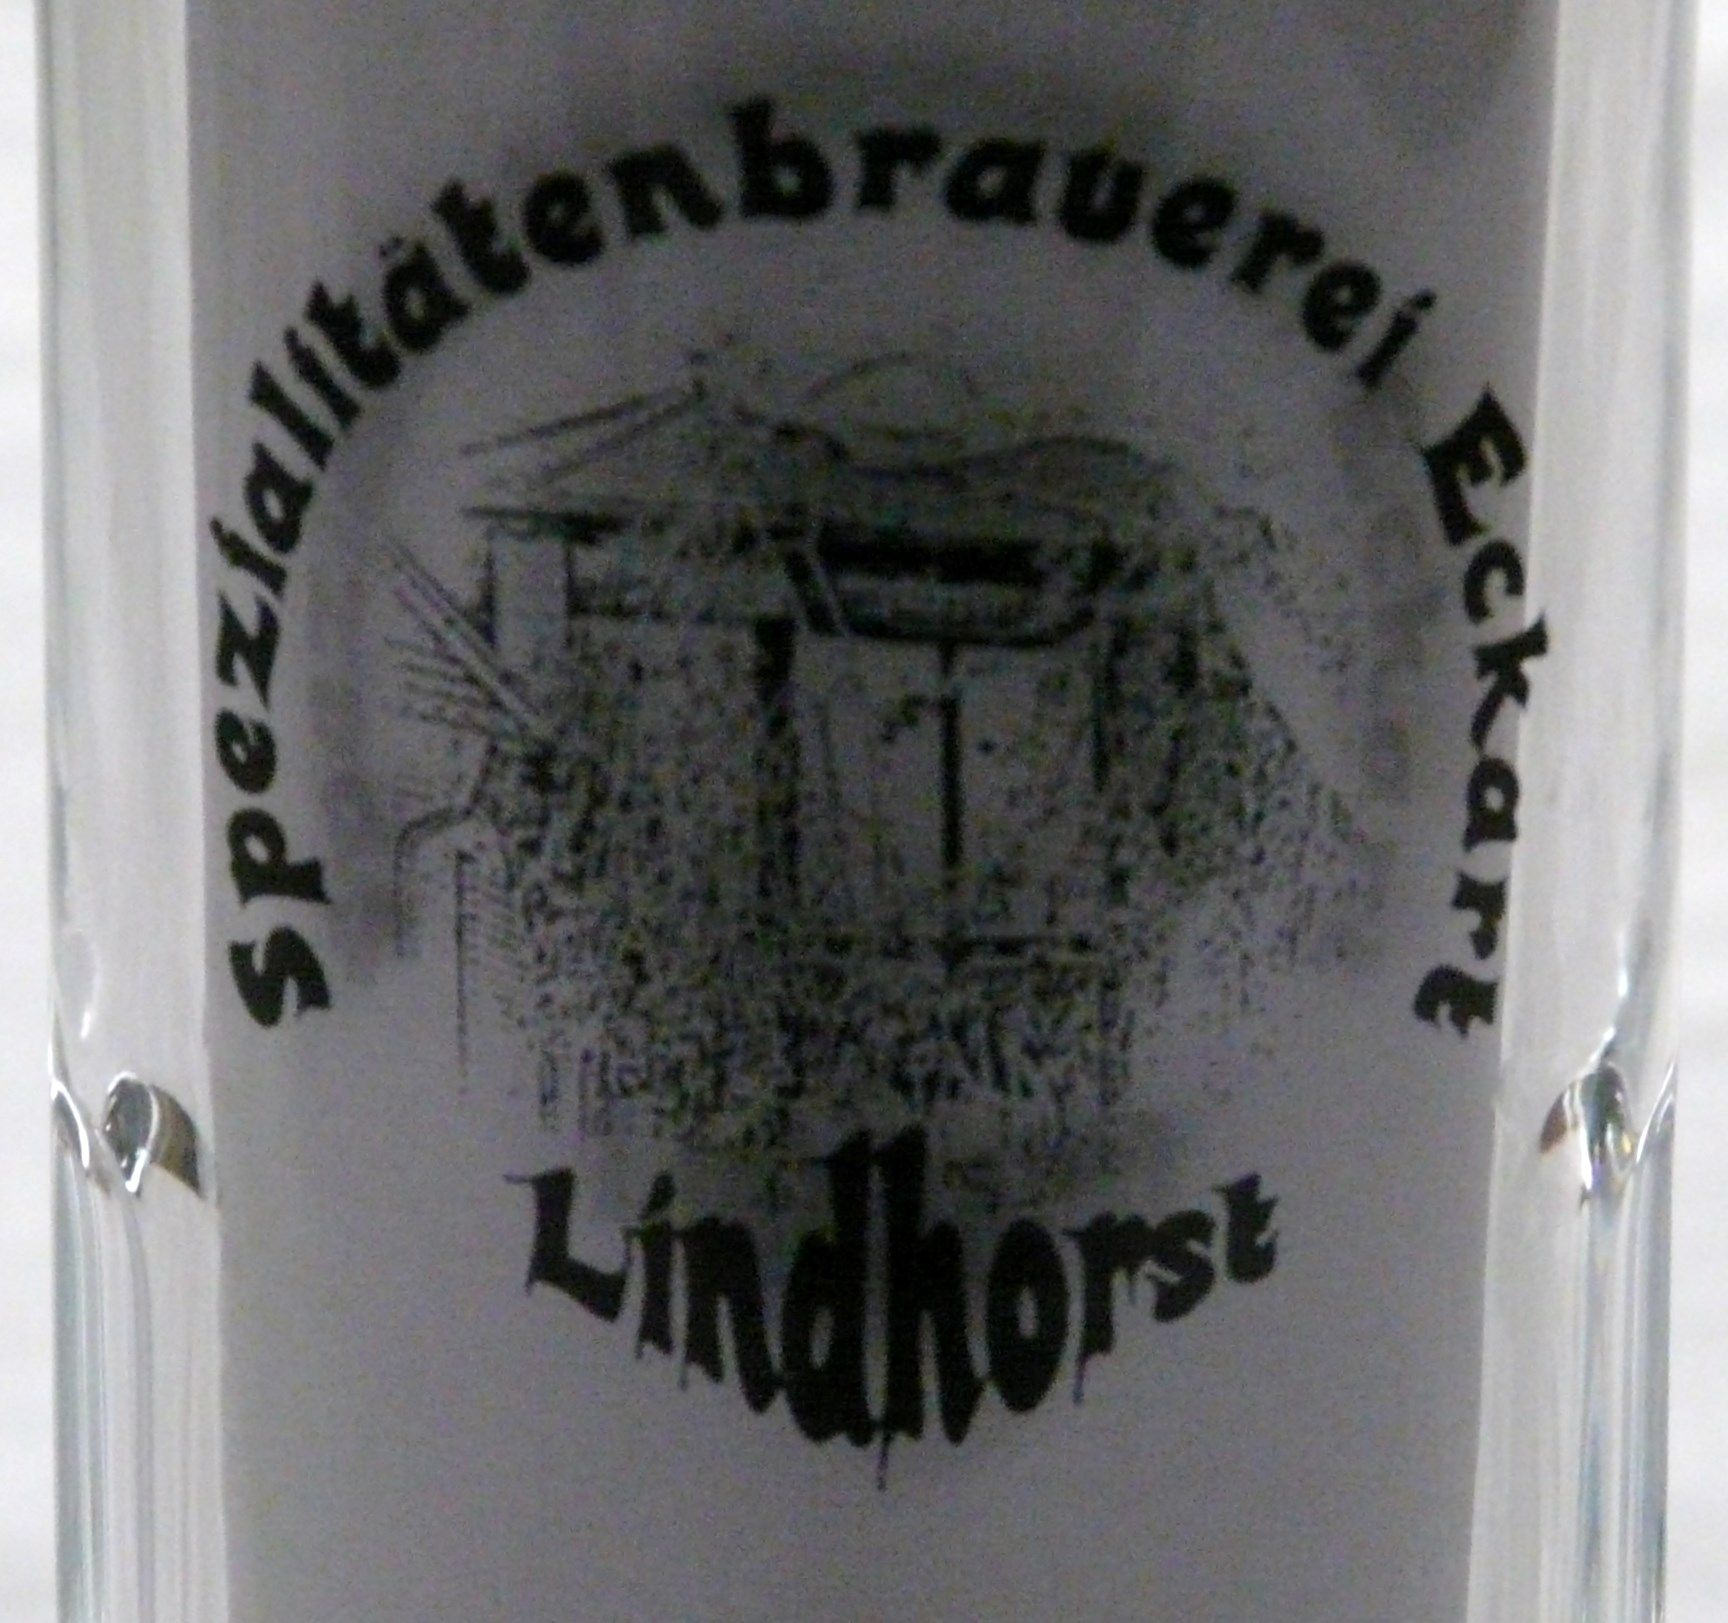 0 3 liter bierglas spezialit tenbrauerei eckart lindhorst ebay. Black Bedroom Furniture Sets. Home Design Ideas